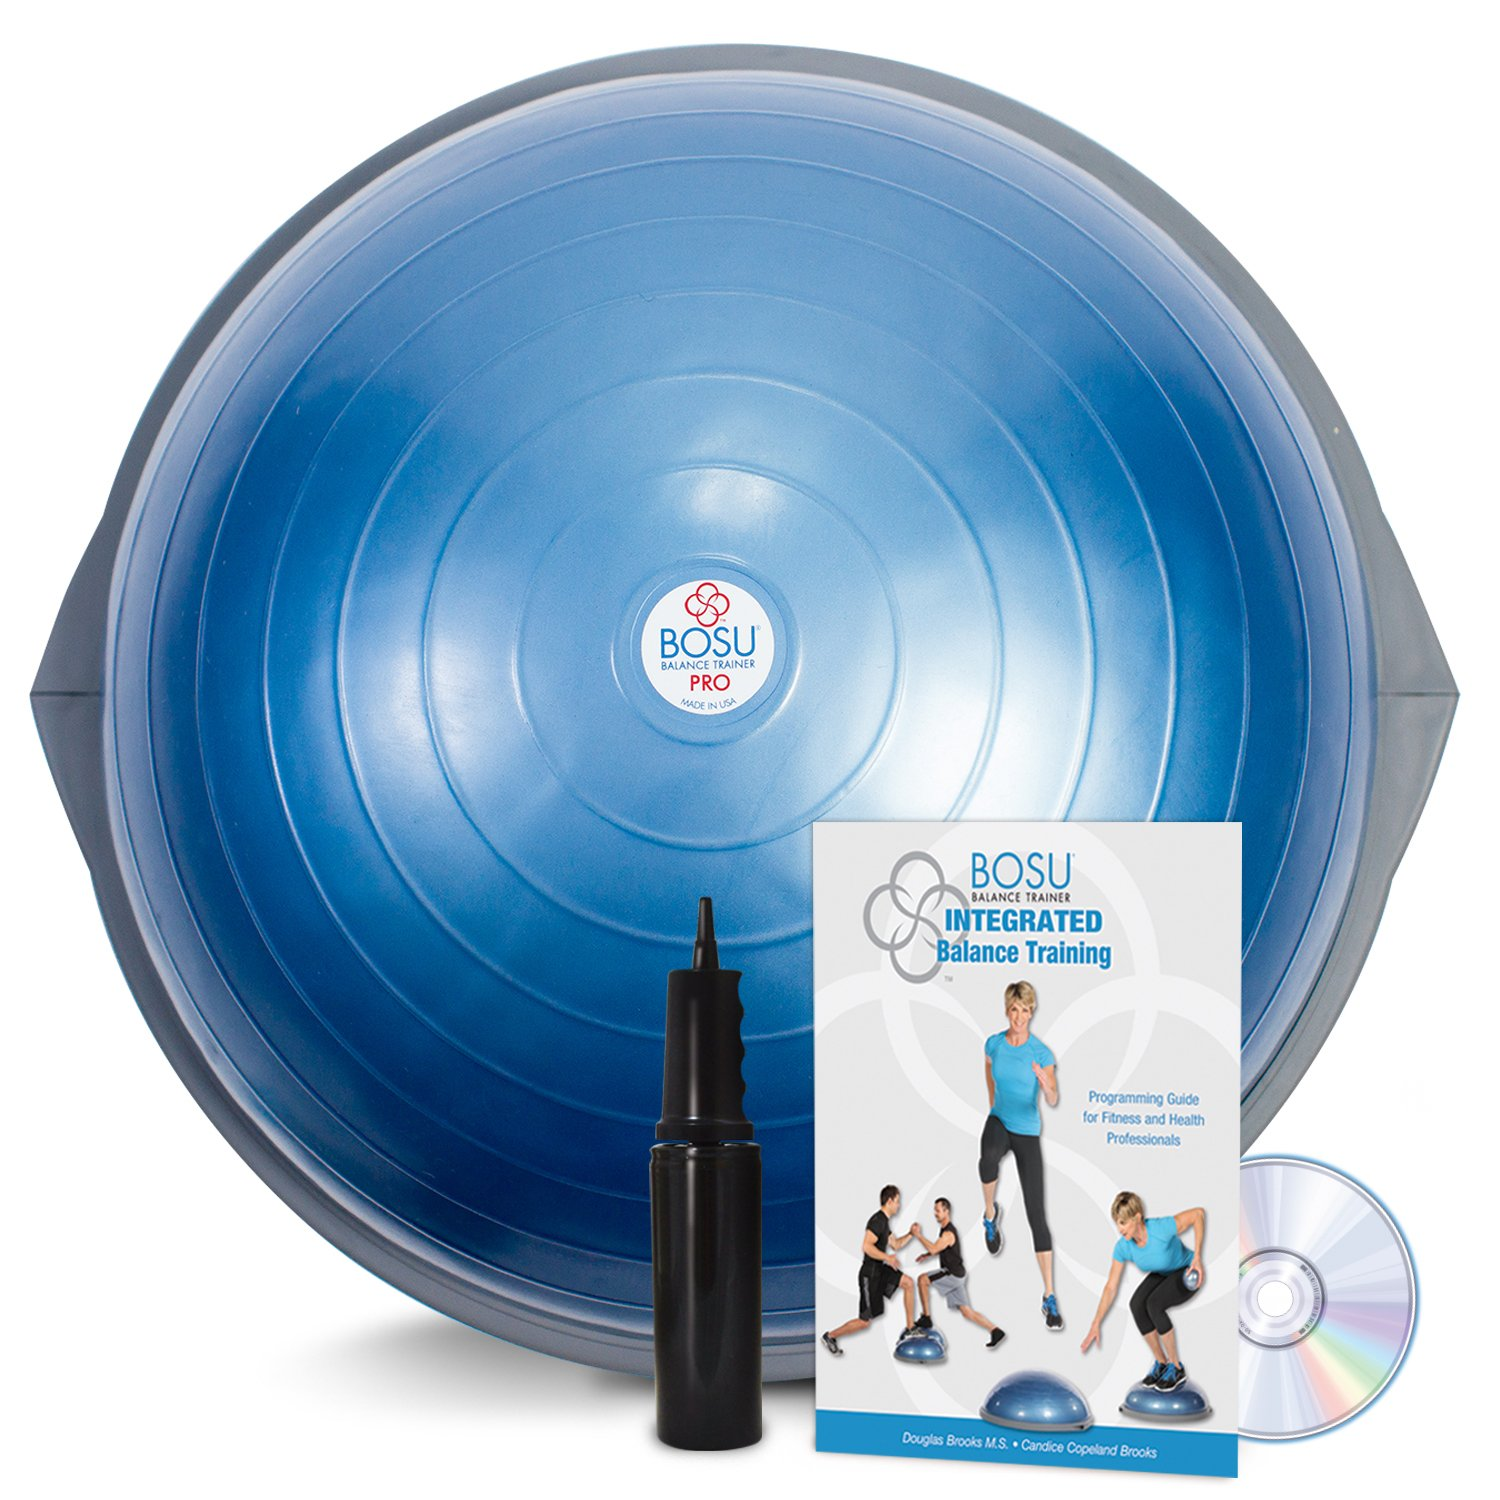 How to Use a BOSU Balance Trainer